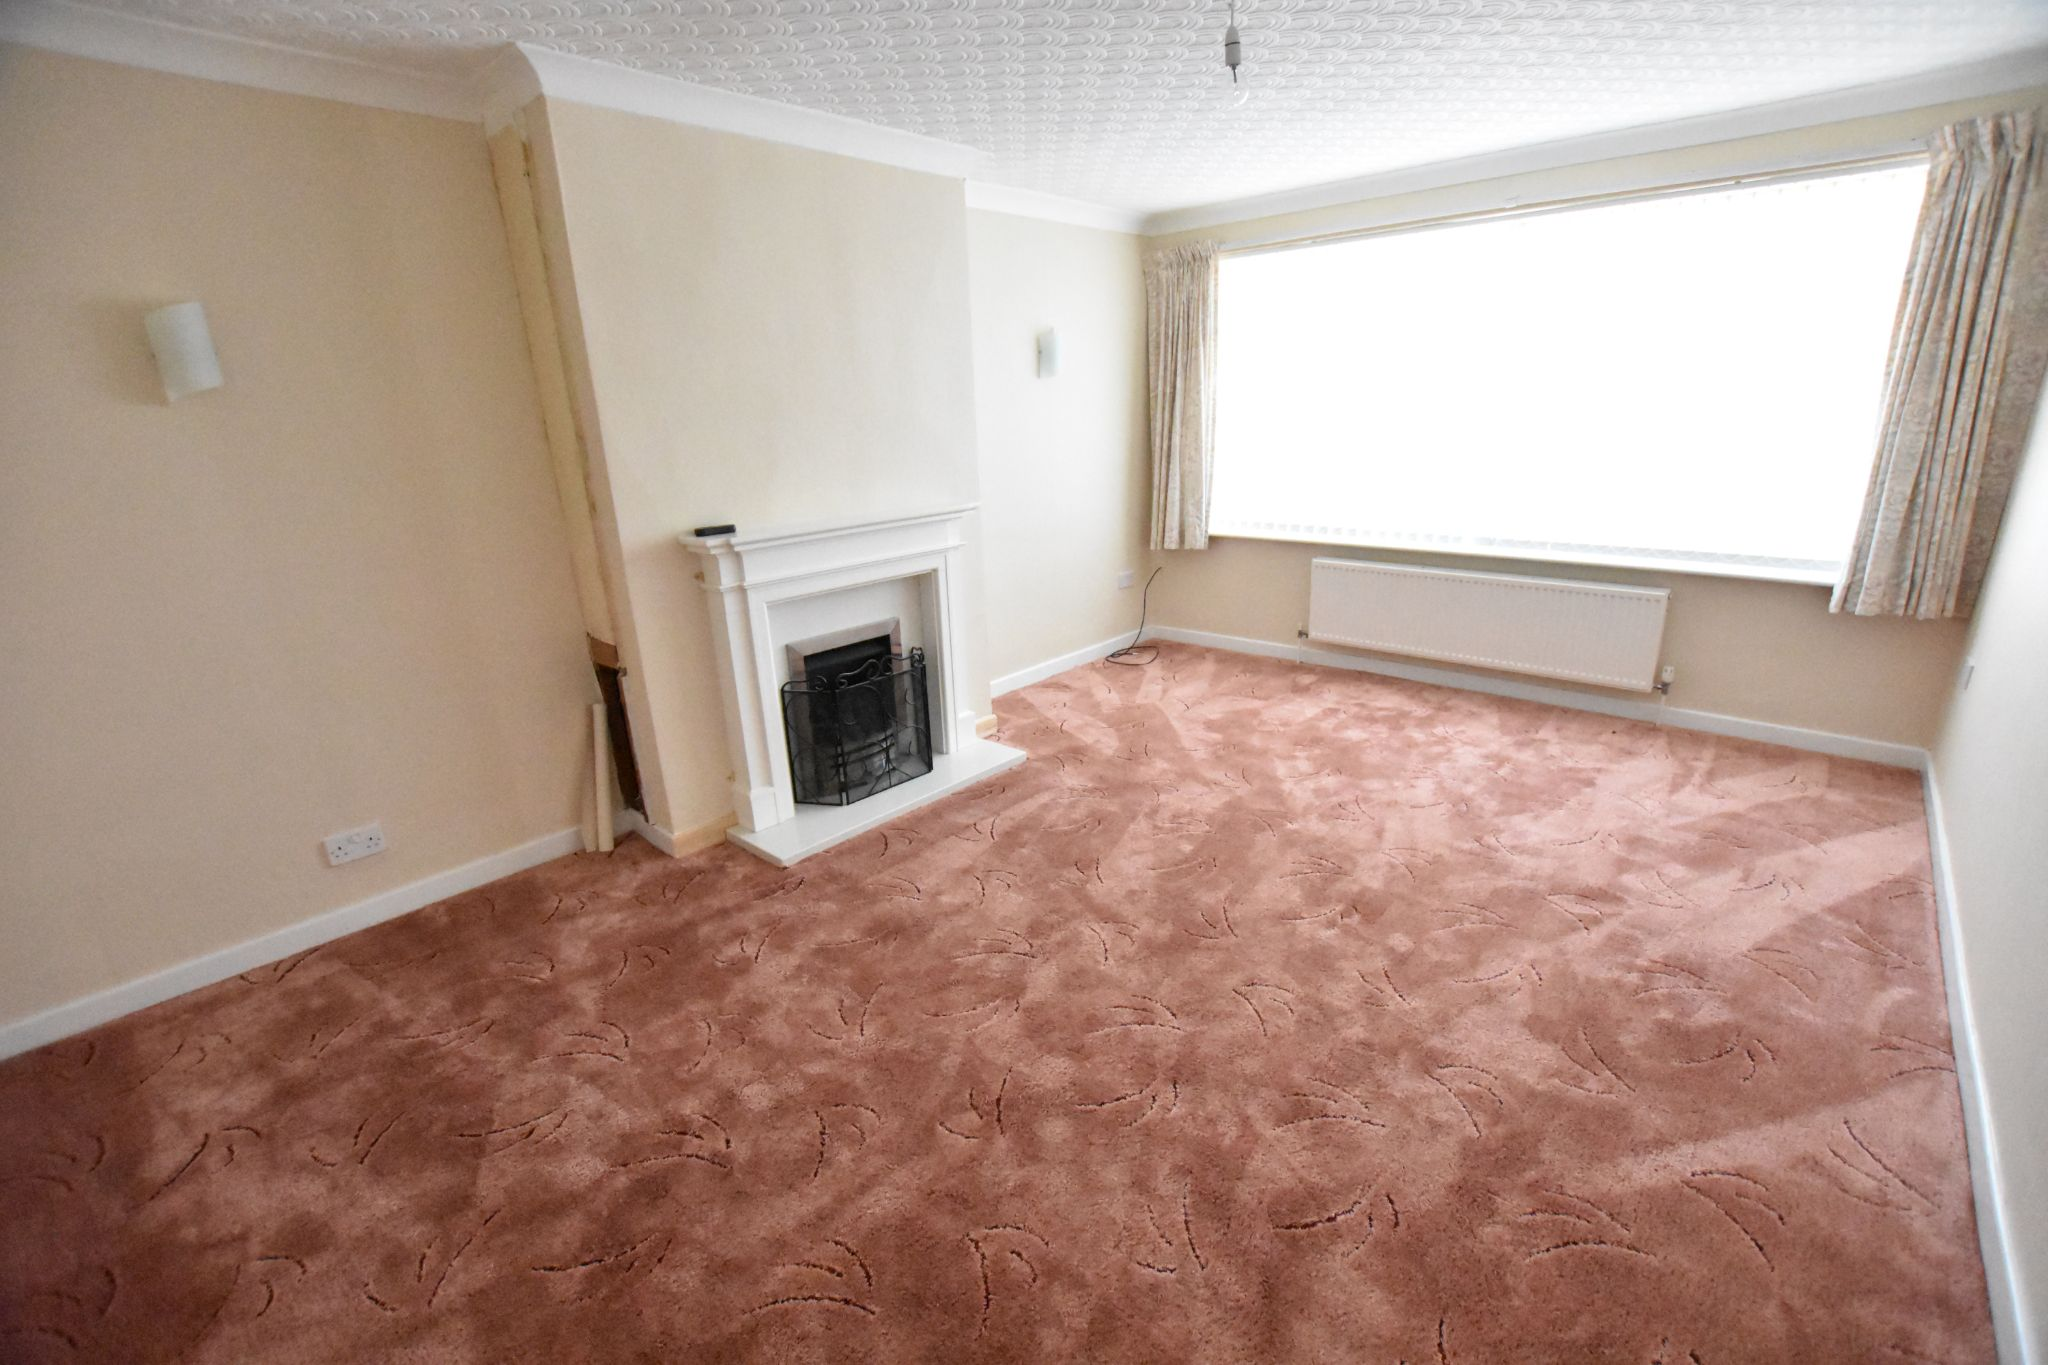 2 bedroom detached bungalow For Sale in Lytham St Annes - Lounge